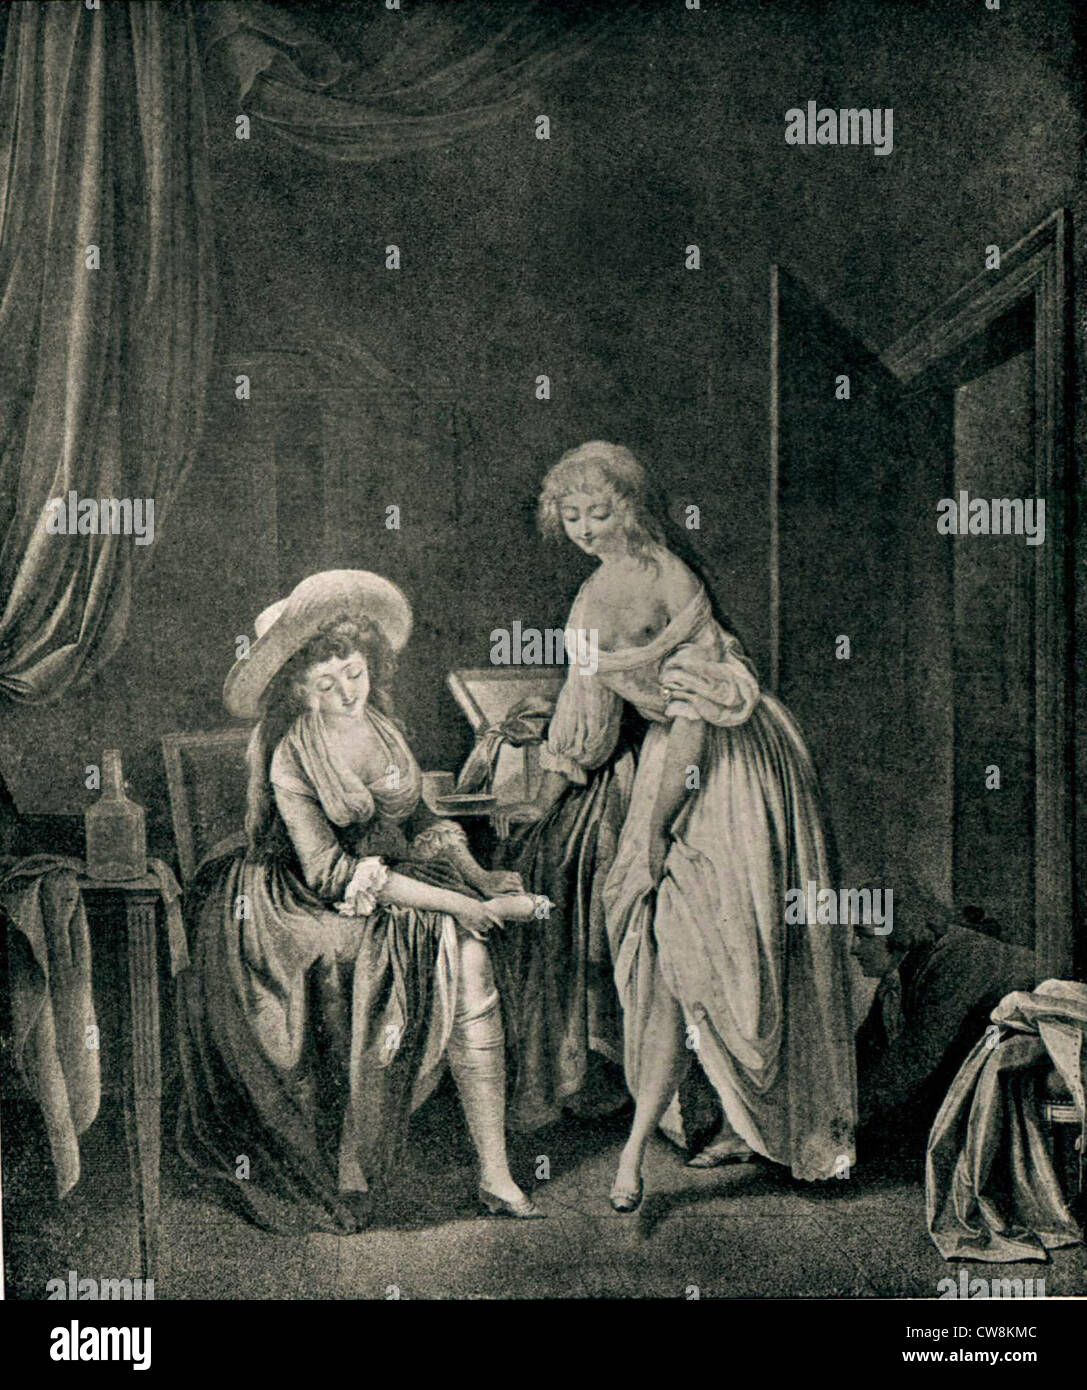 Engraving by Boilly (second set), genre scene - Stock Image